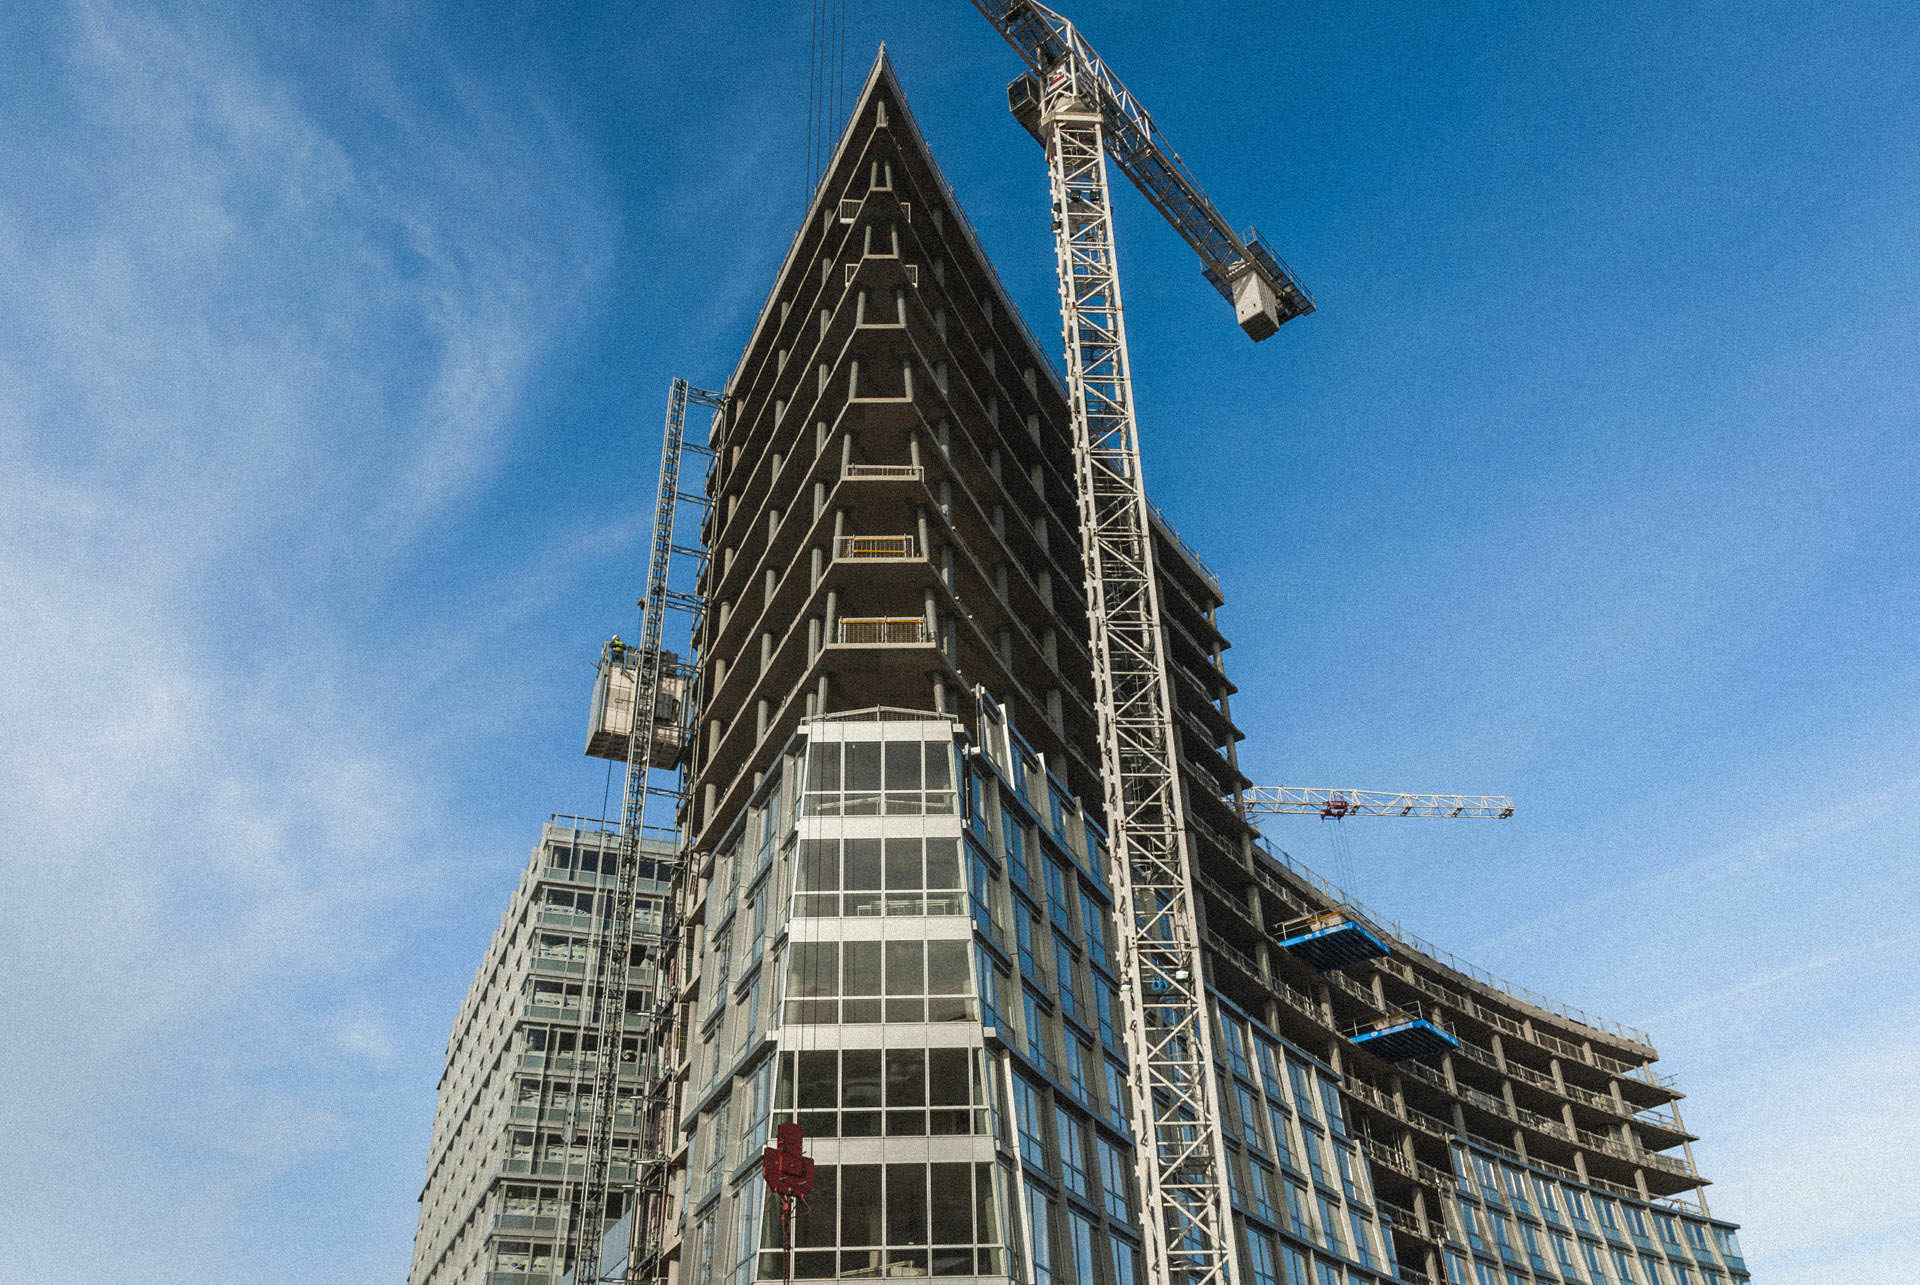 Cladding and Grenfell - the legal landscape - BM Insights